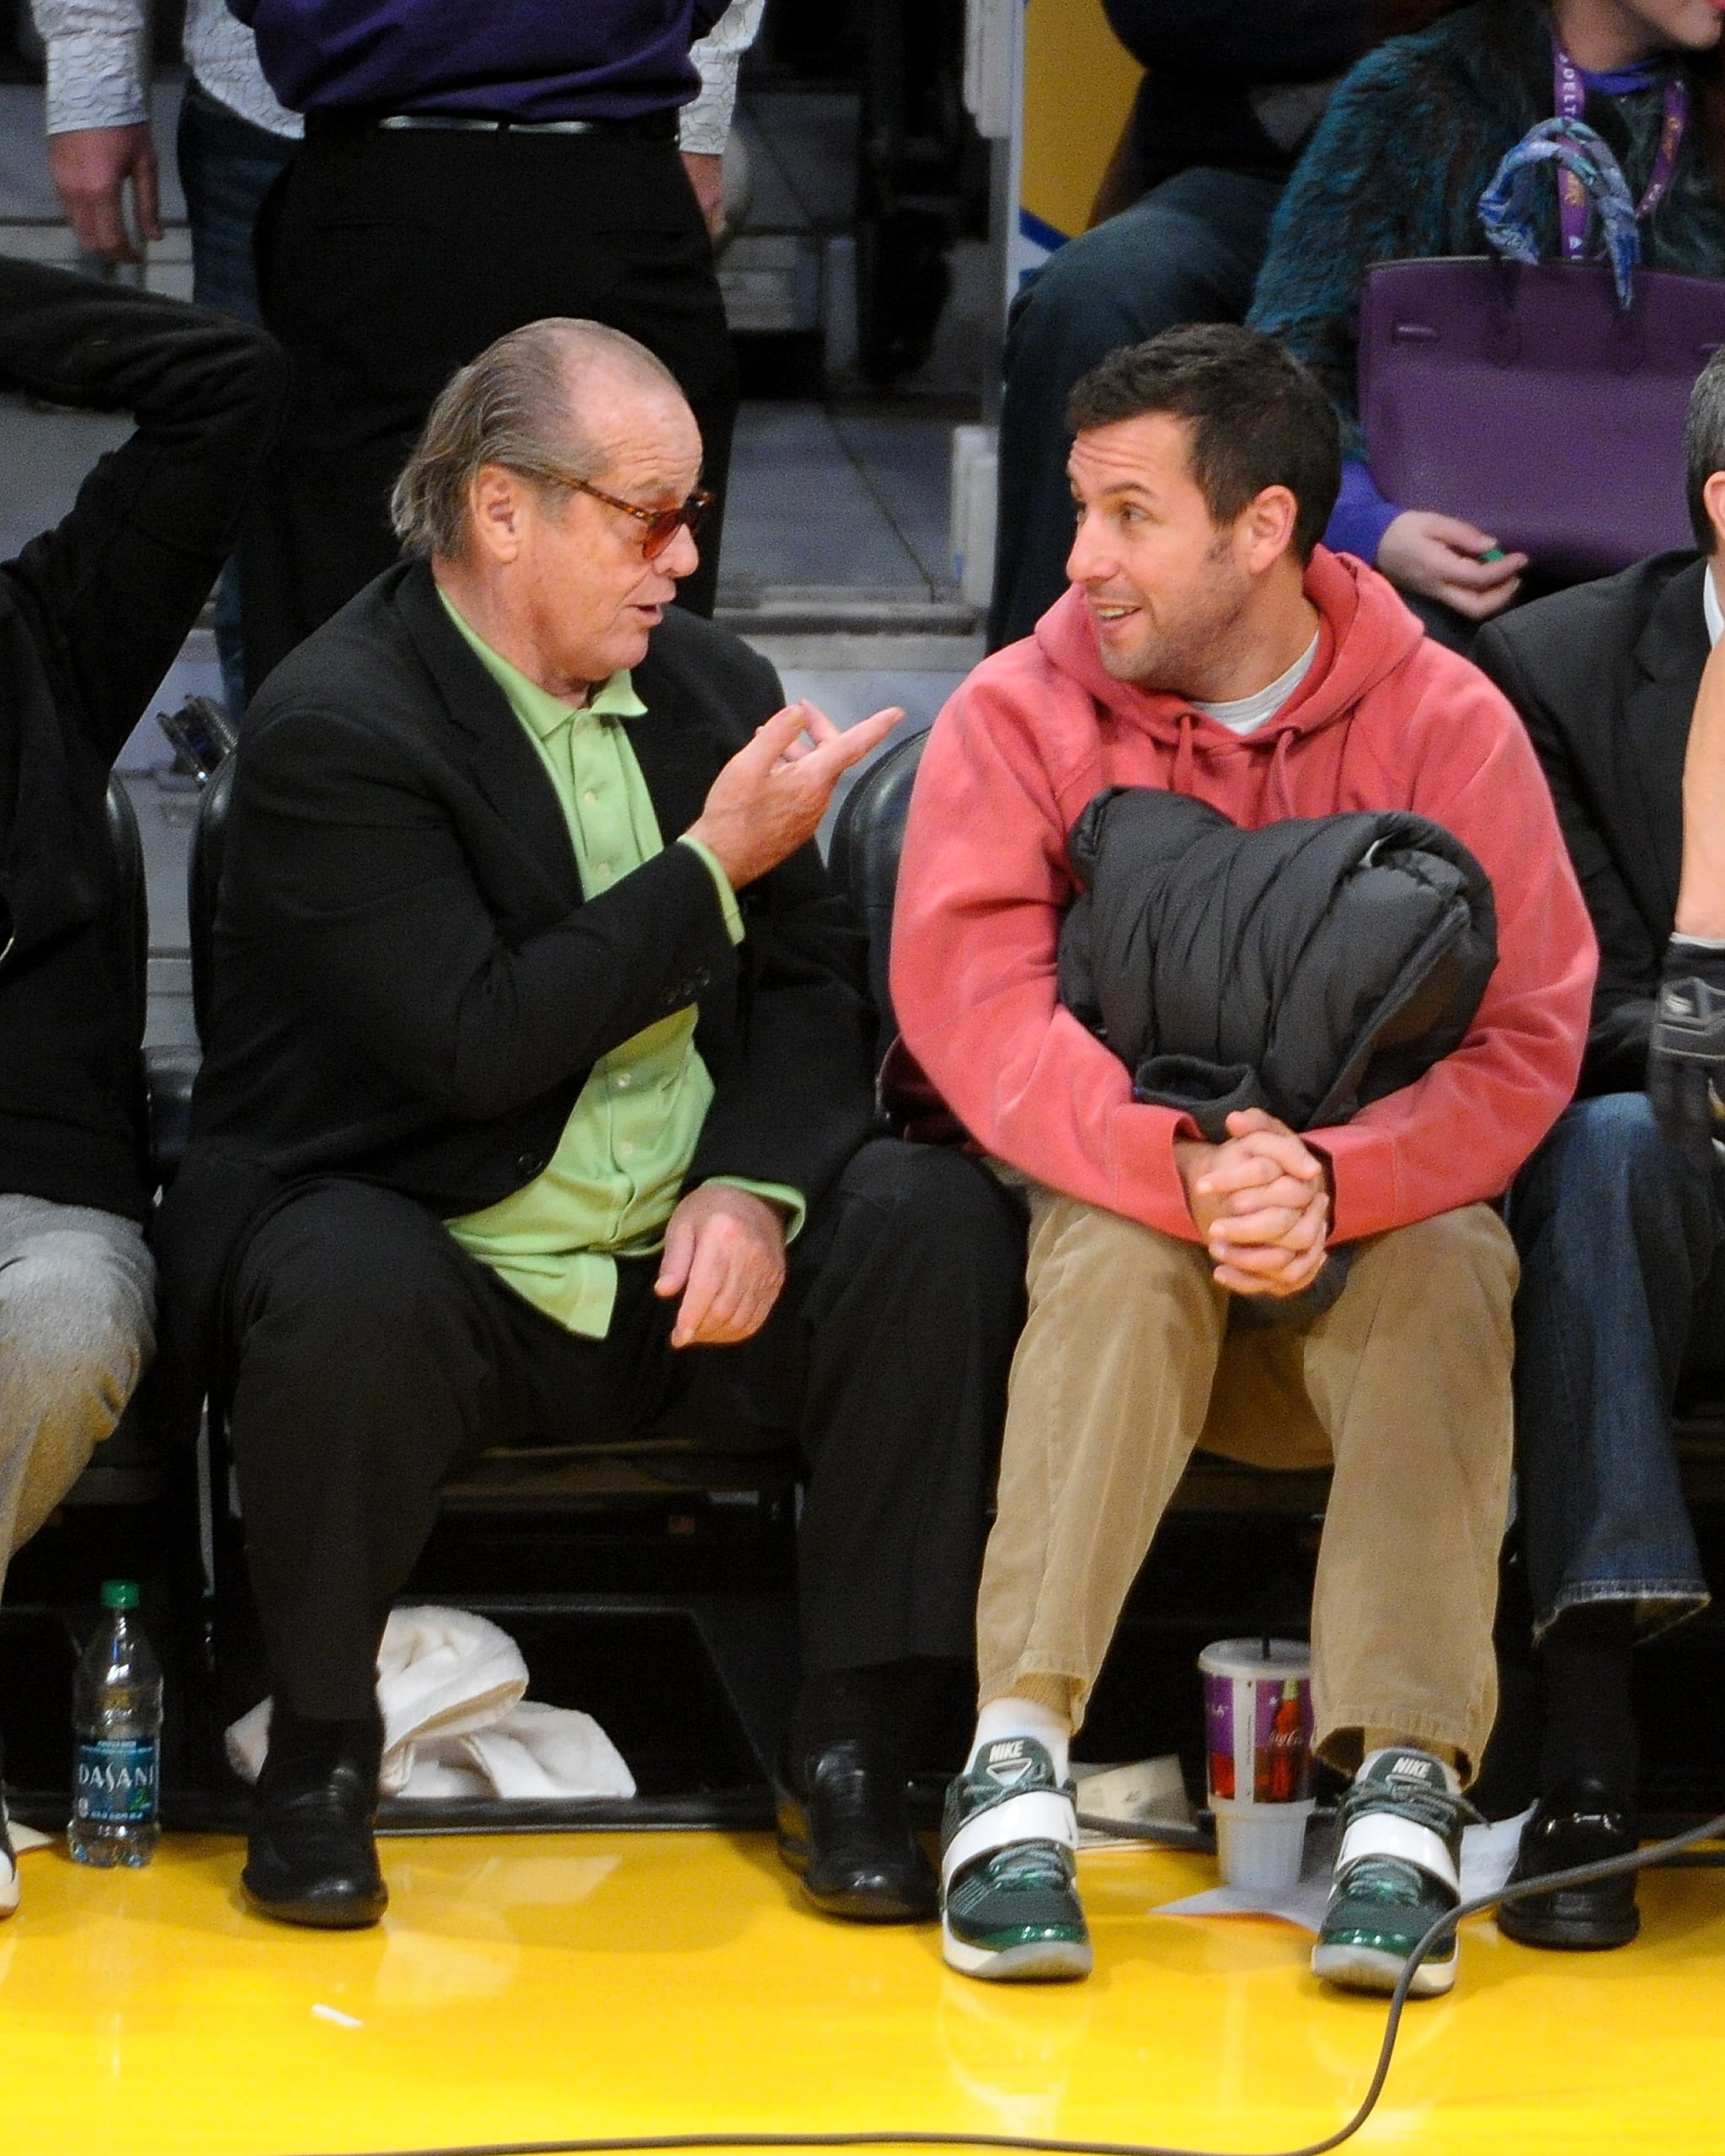 Jack Nicholson And Adam Sandler Seemed To Have A Serious Conversation It S March Madness See Stars Sitting Courtside Popsugar Celebrity Photo 25